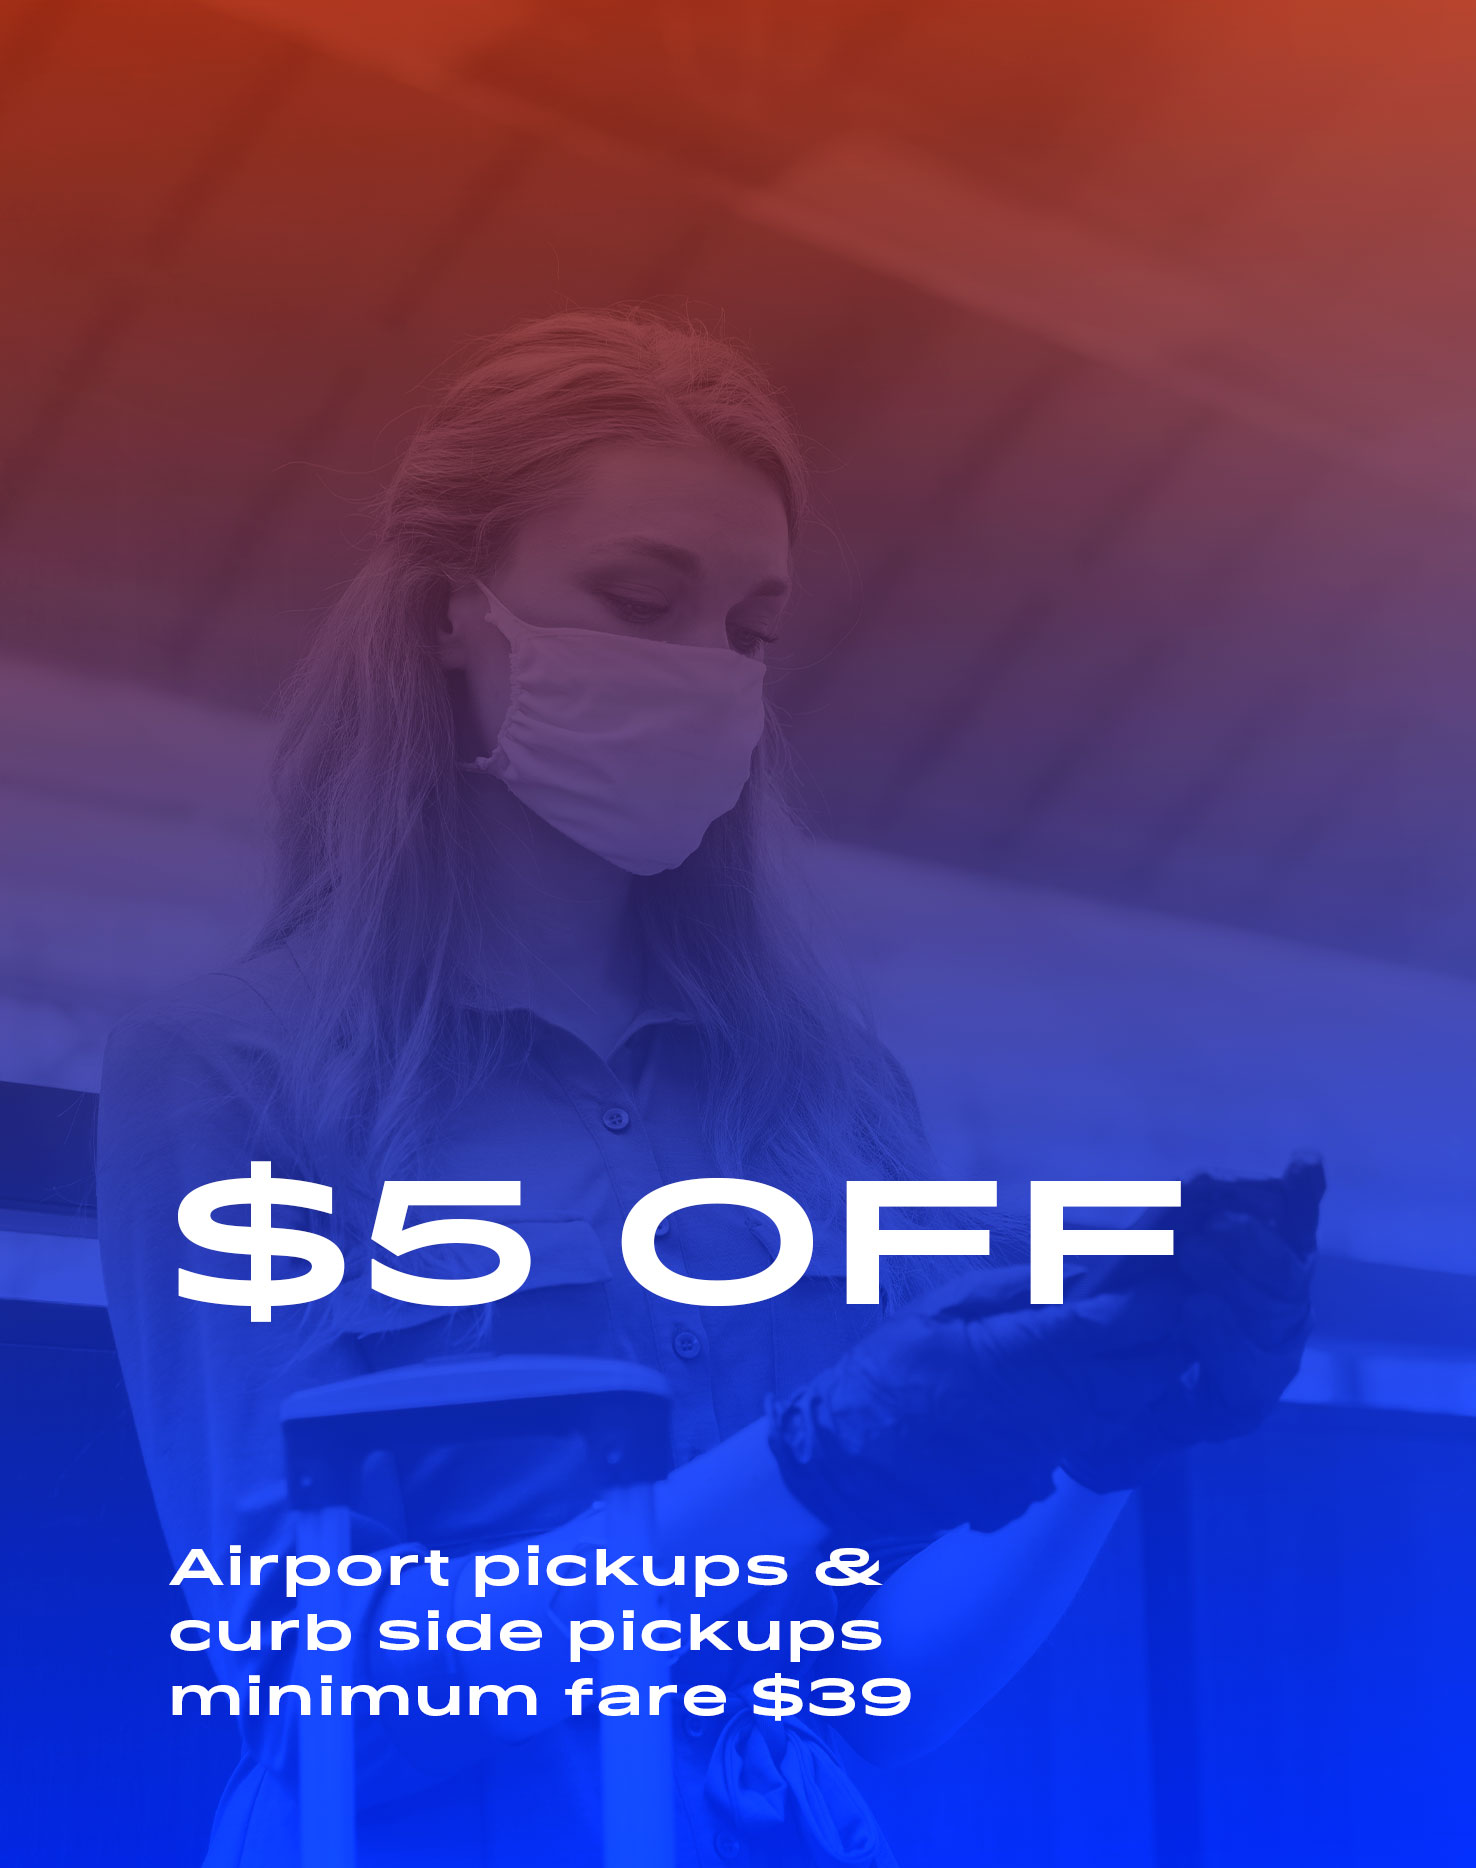 $5 car service coupon